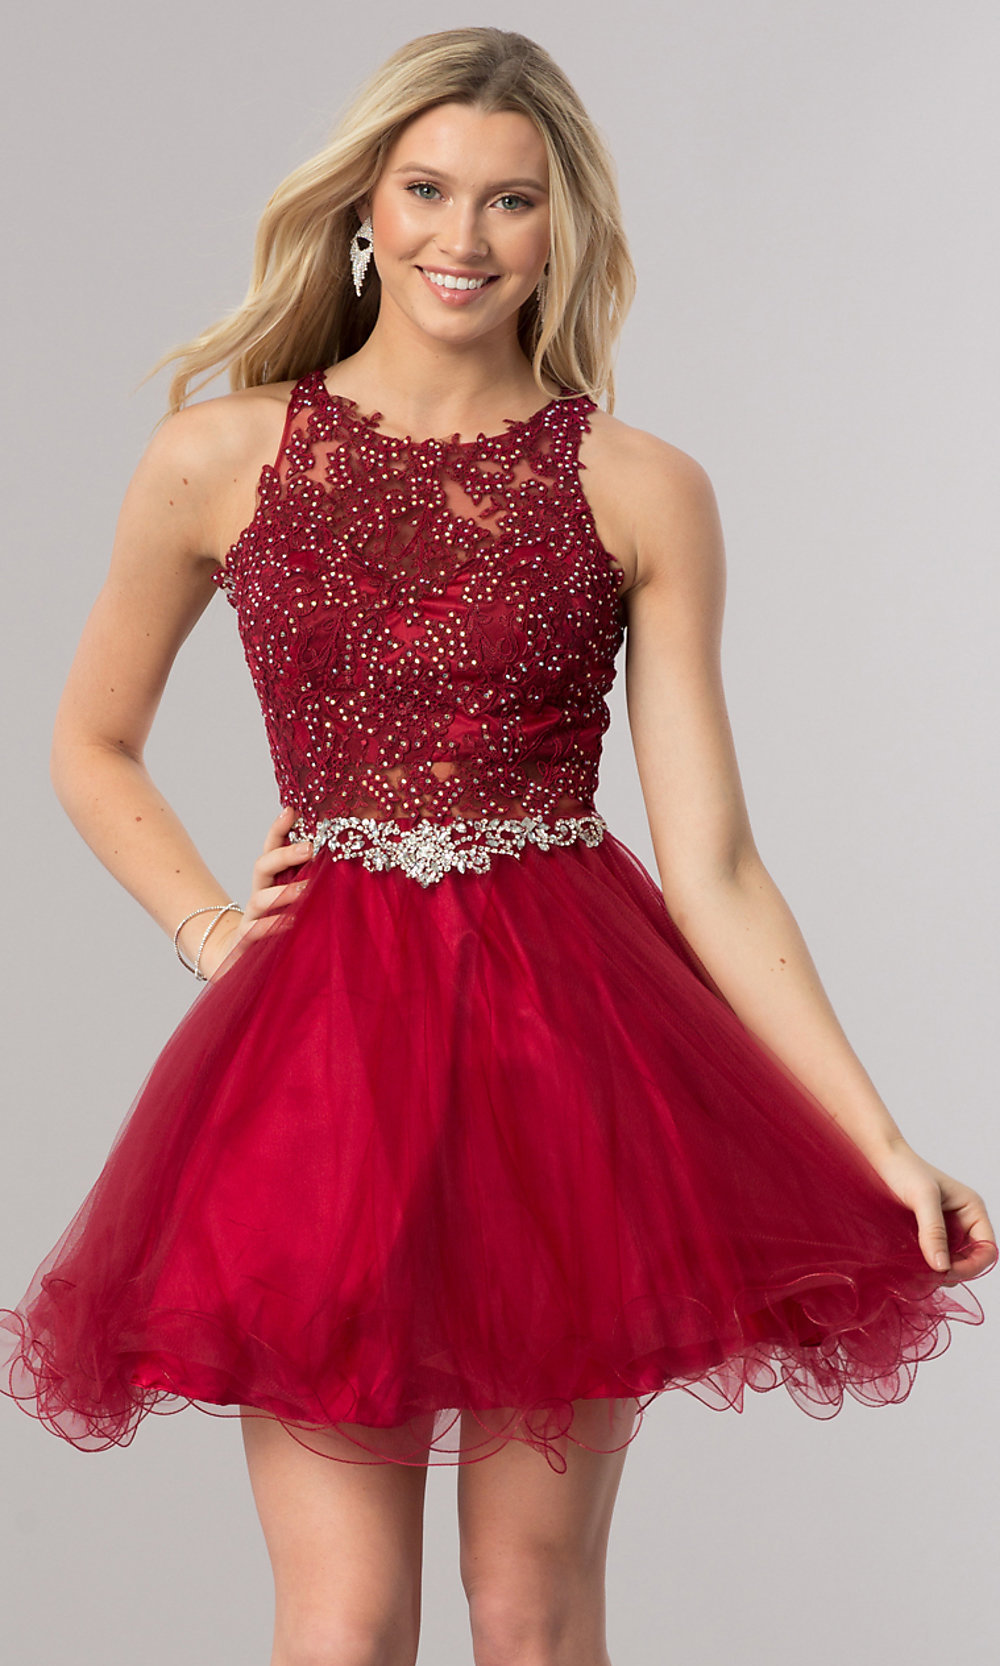 67173599b21 ... short homecoming dress with beading. Style  DQ-9999. Tap to expand